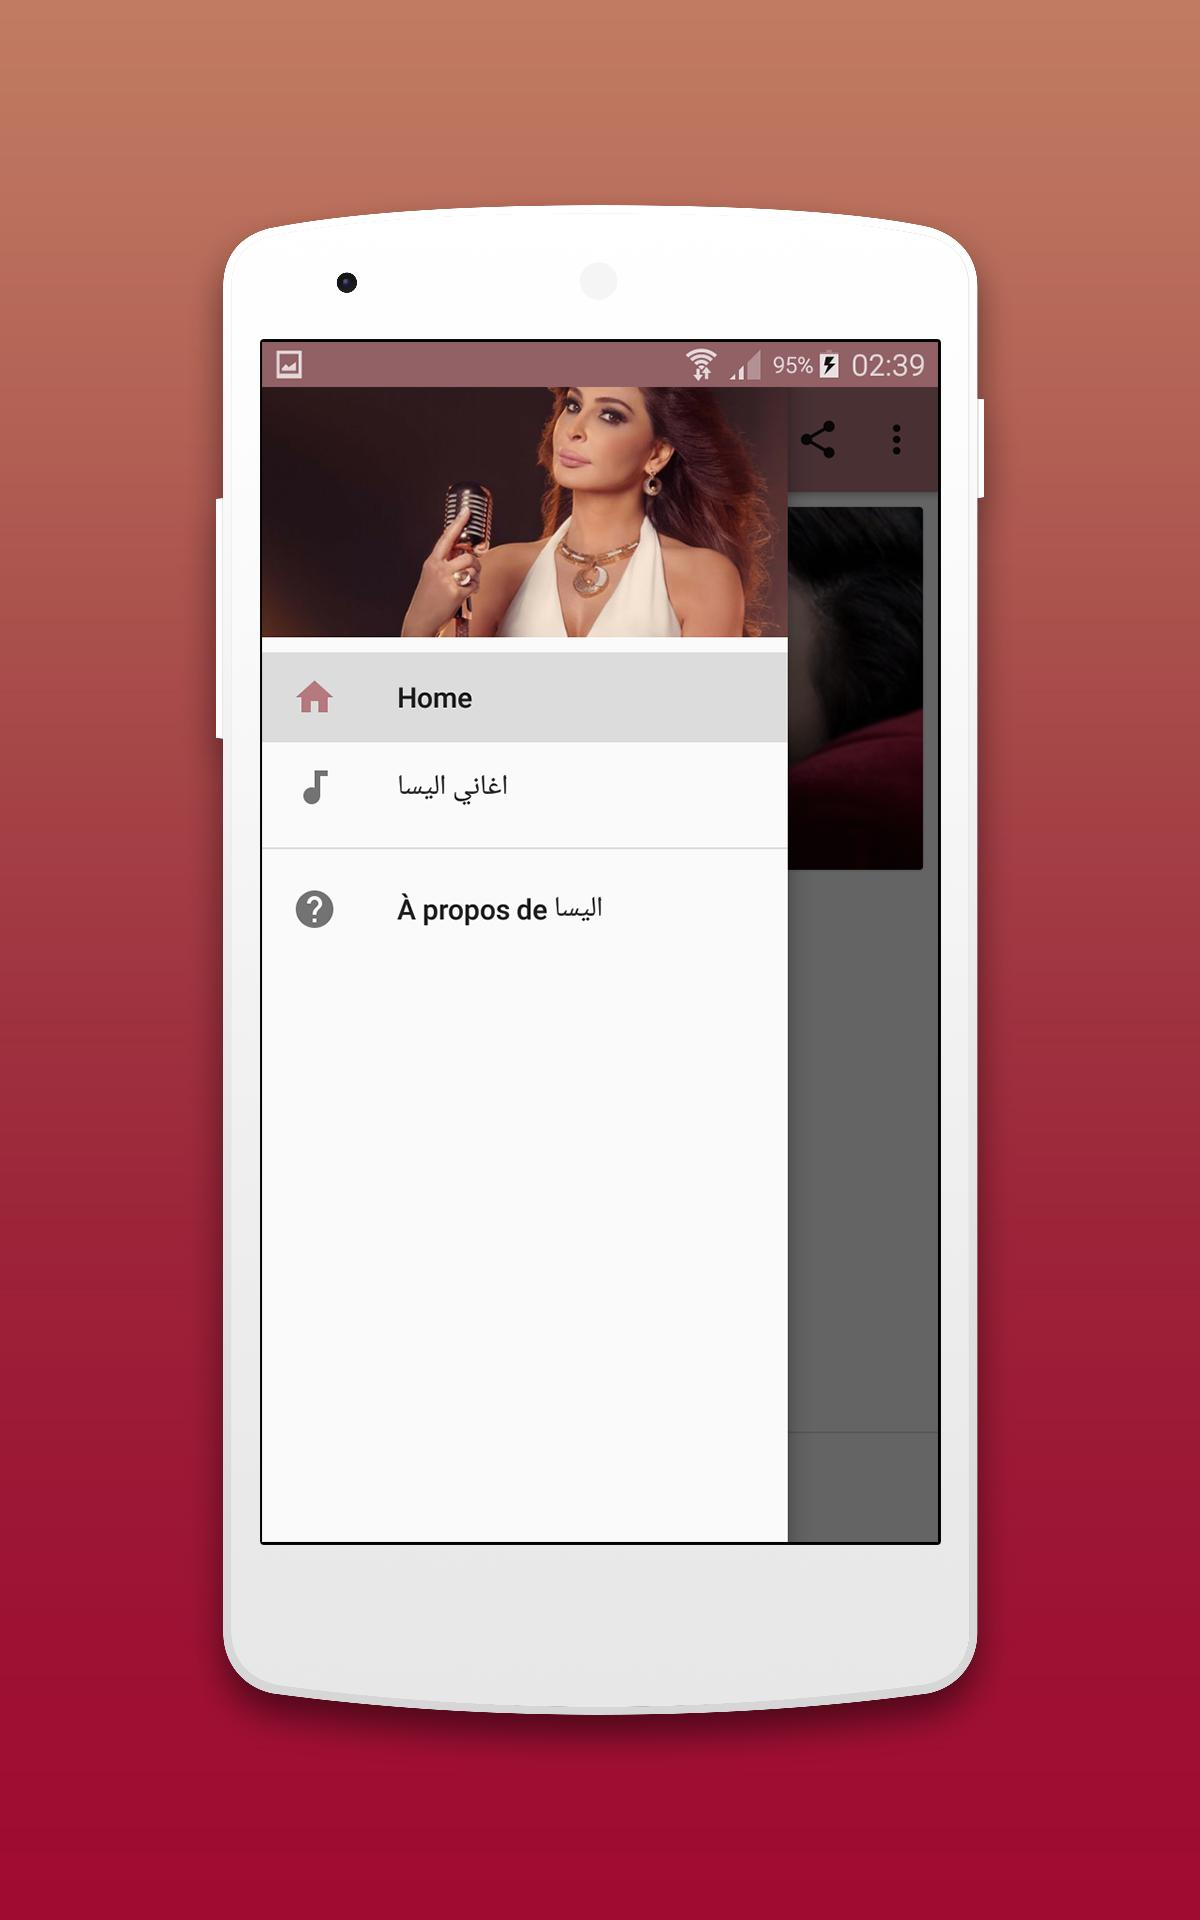 01a46e17b أغاني إليسا 2018 for Android - APK Download